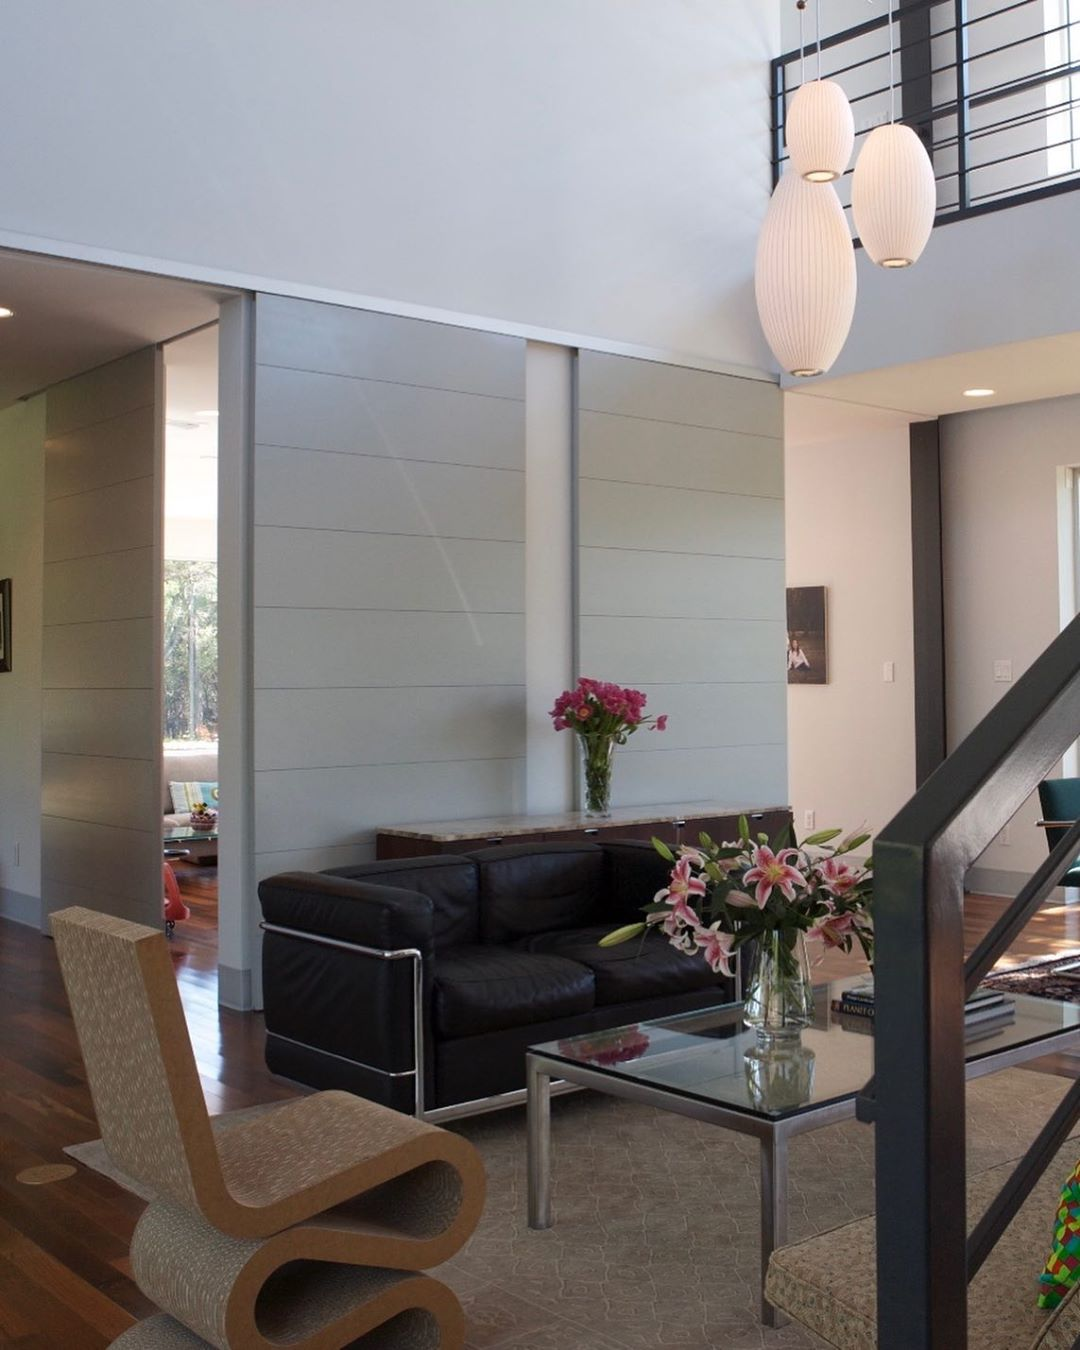 Flash-back to 2007! Collaboration with @webberstudio on our steel and glass residence!